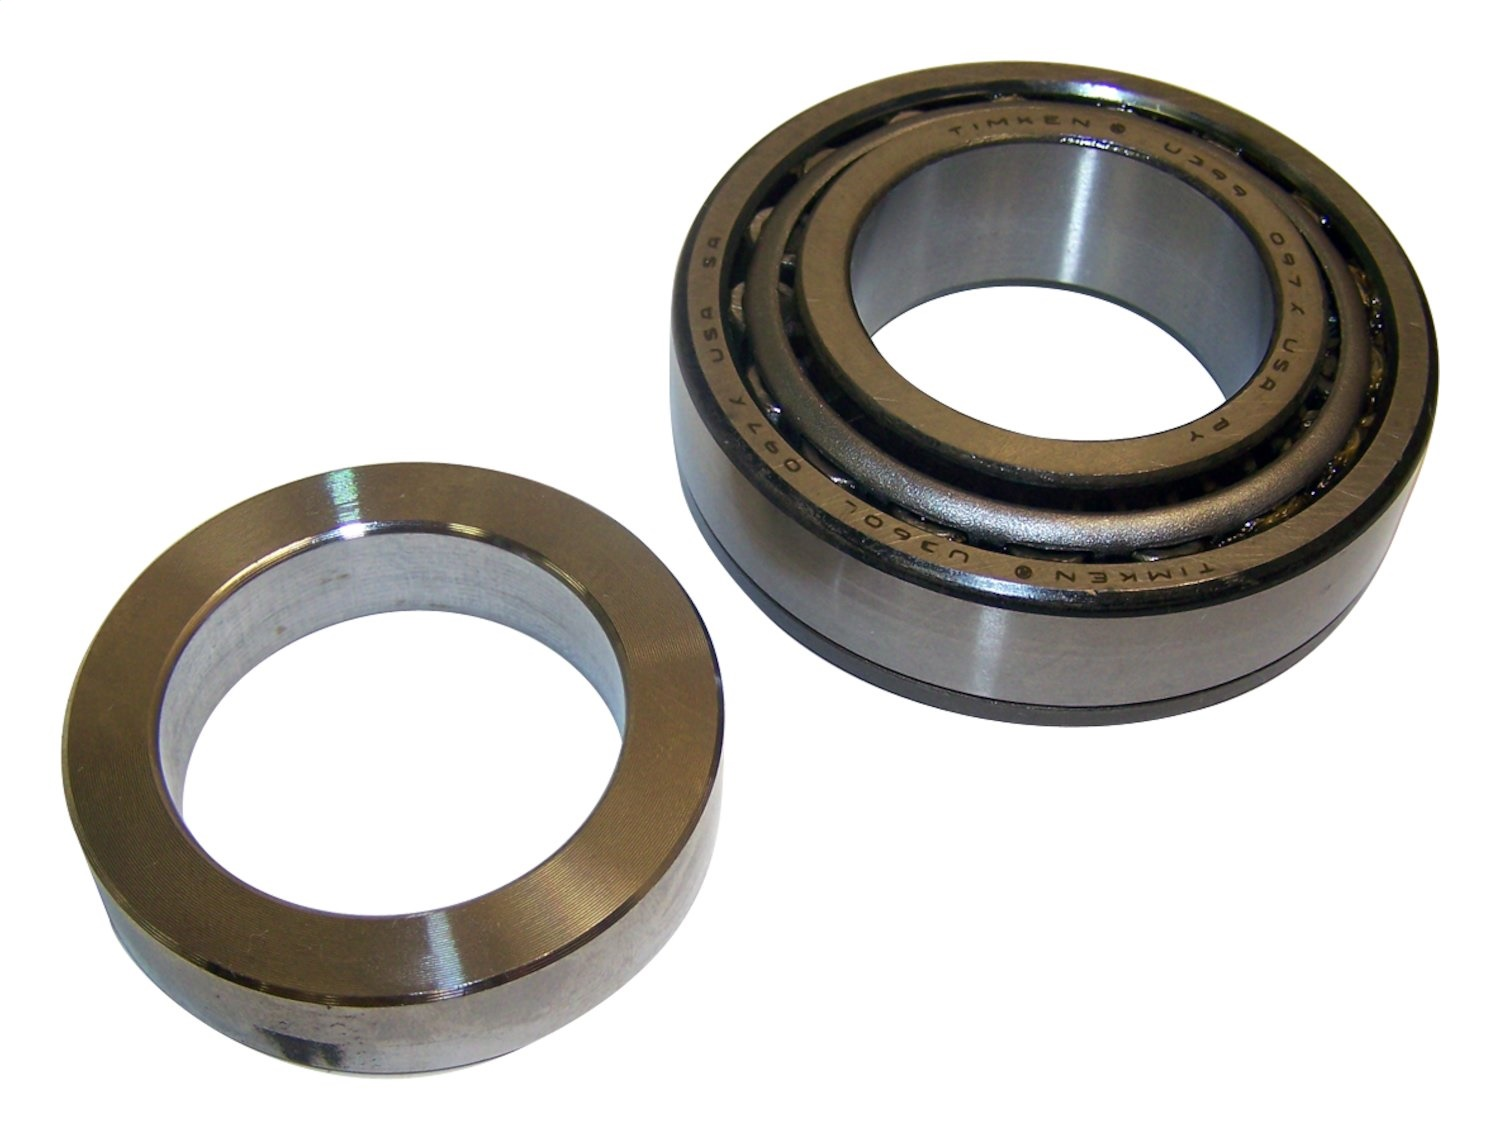 Spindle Axle With Bearing : New crown automotive axle bearing kit shaft jeep wrangler